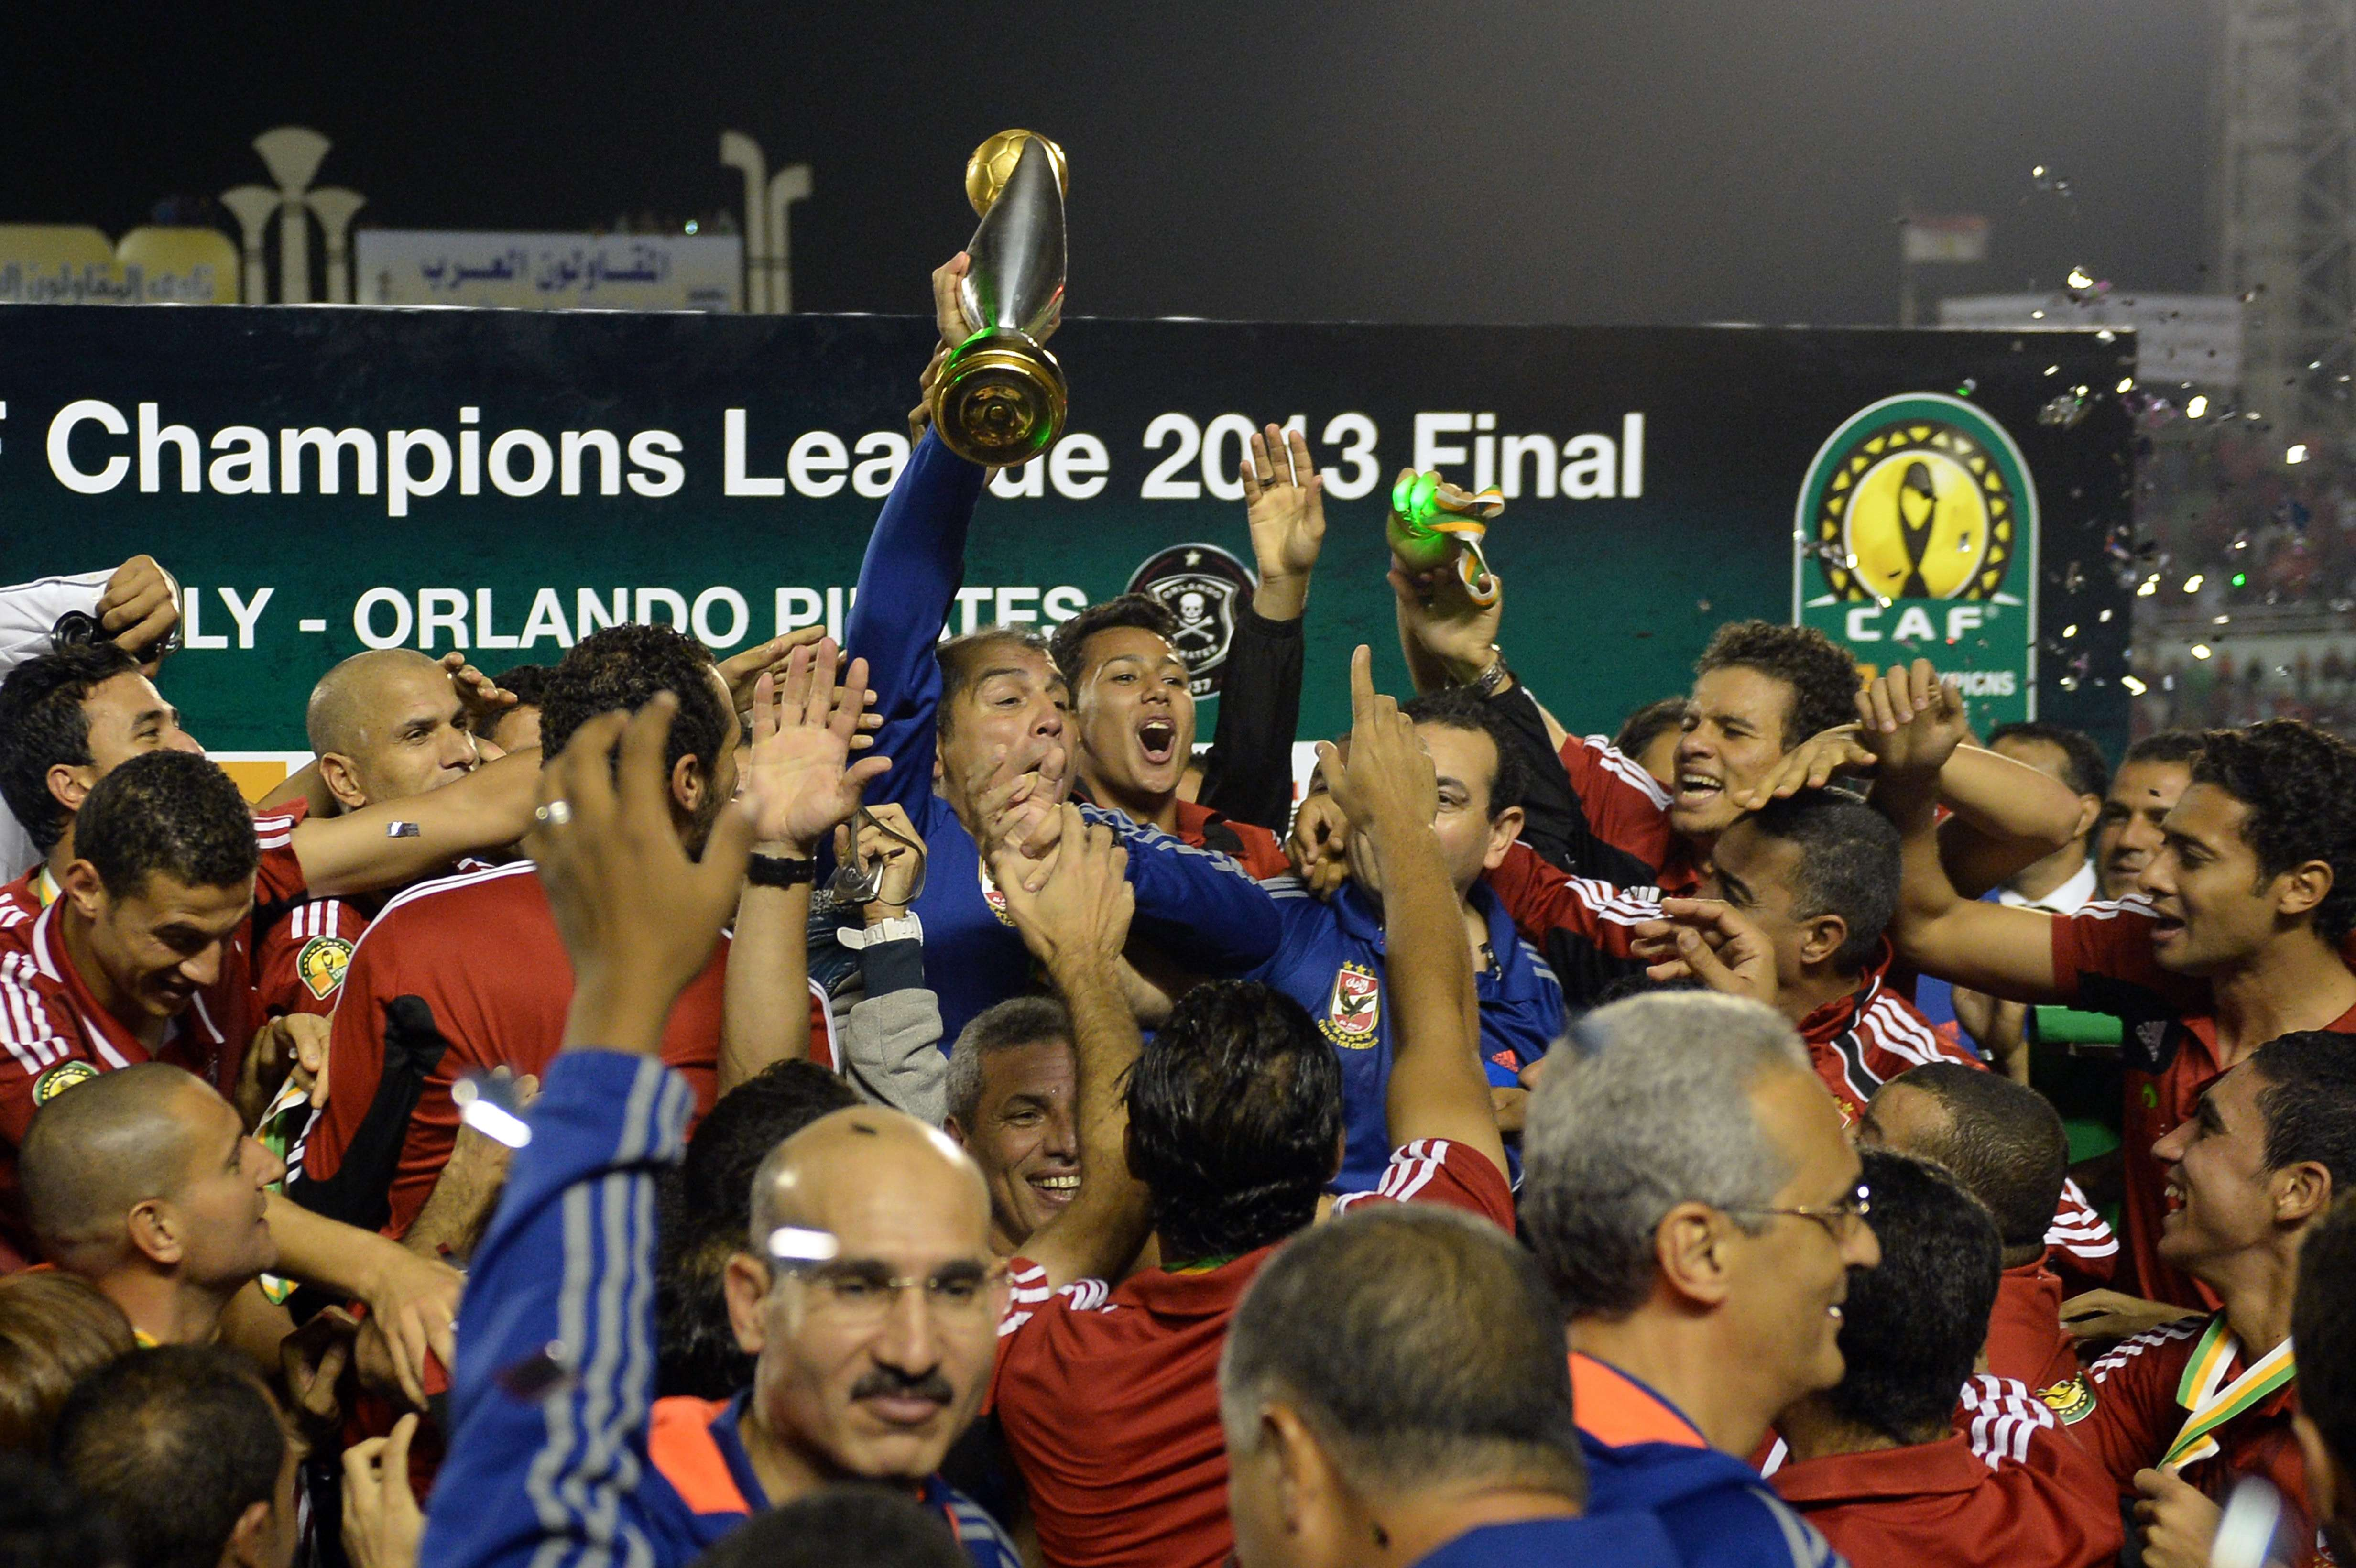 Egyptian al-Ahly coach Mohamed Youssef holds up the African Champions League trophy in Cairo, after defeating Orlando Pirates of South Africa 2-0 in the second leg of the final (AFP PHOTO / KHALED DESOUKI)